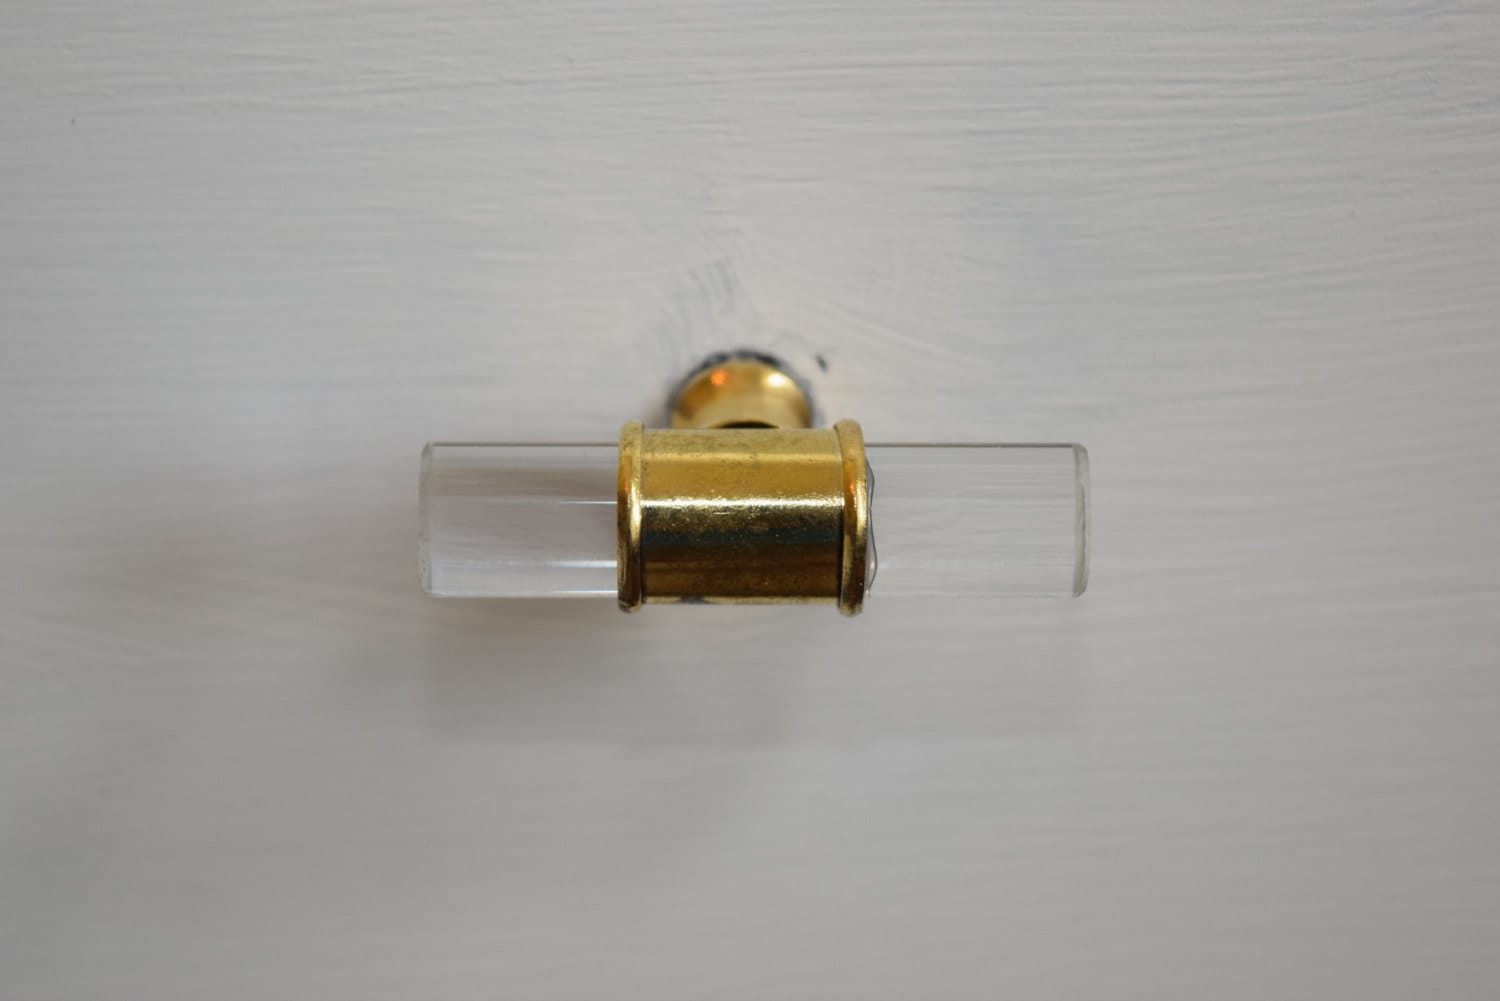 incredible unique graceful gold pull out atlas knobs handles center dw kitchen along cabinet turn to nepkap with homewares drawers drawer u pulls bar